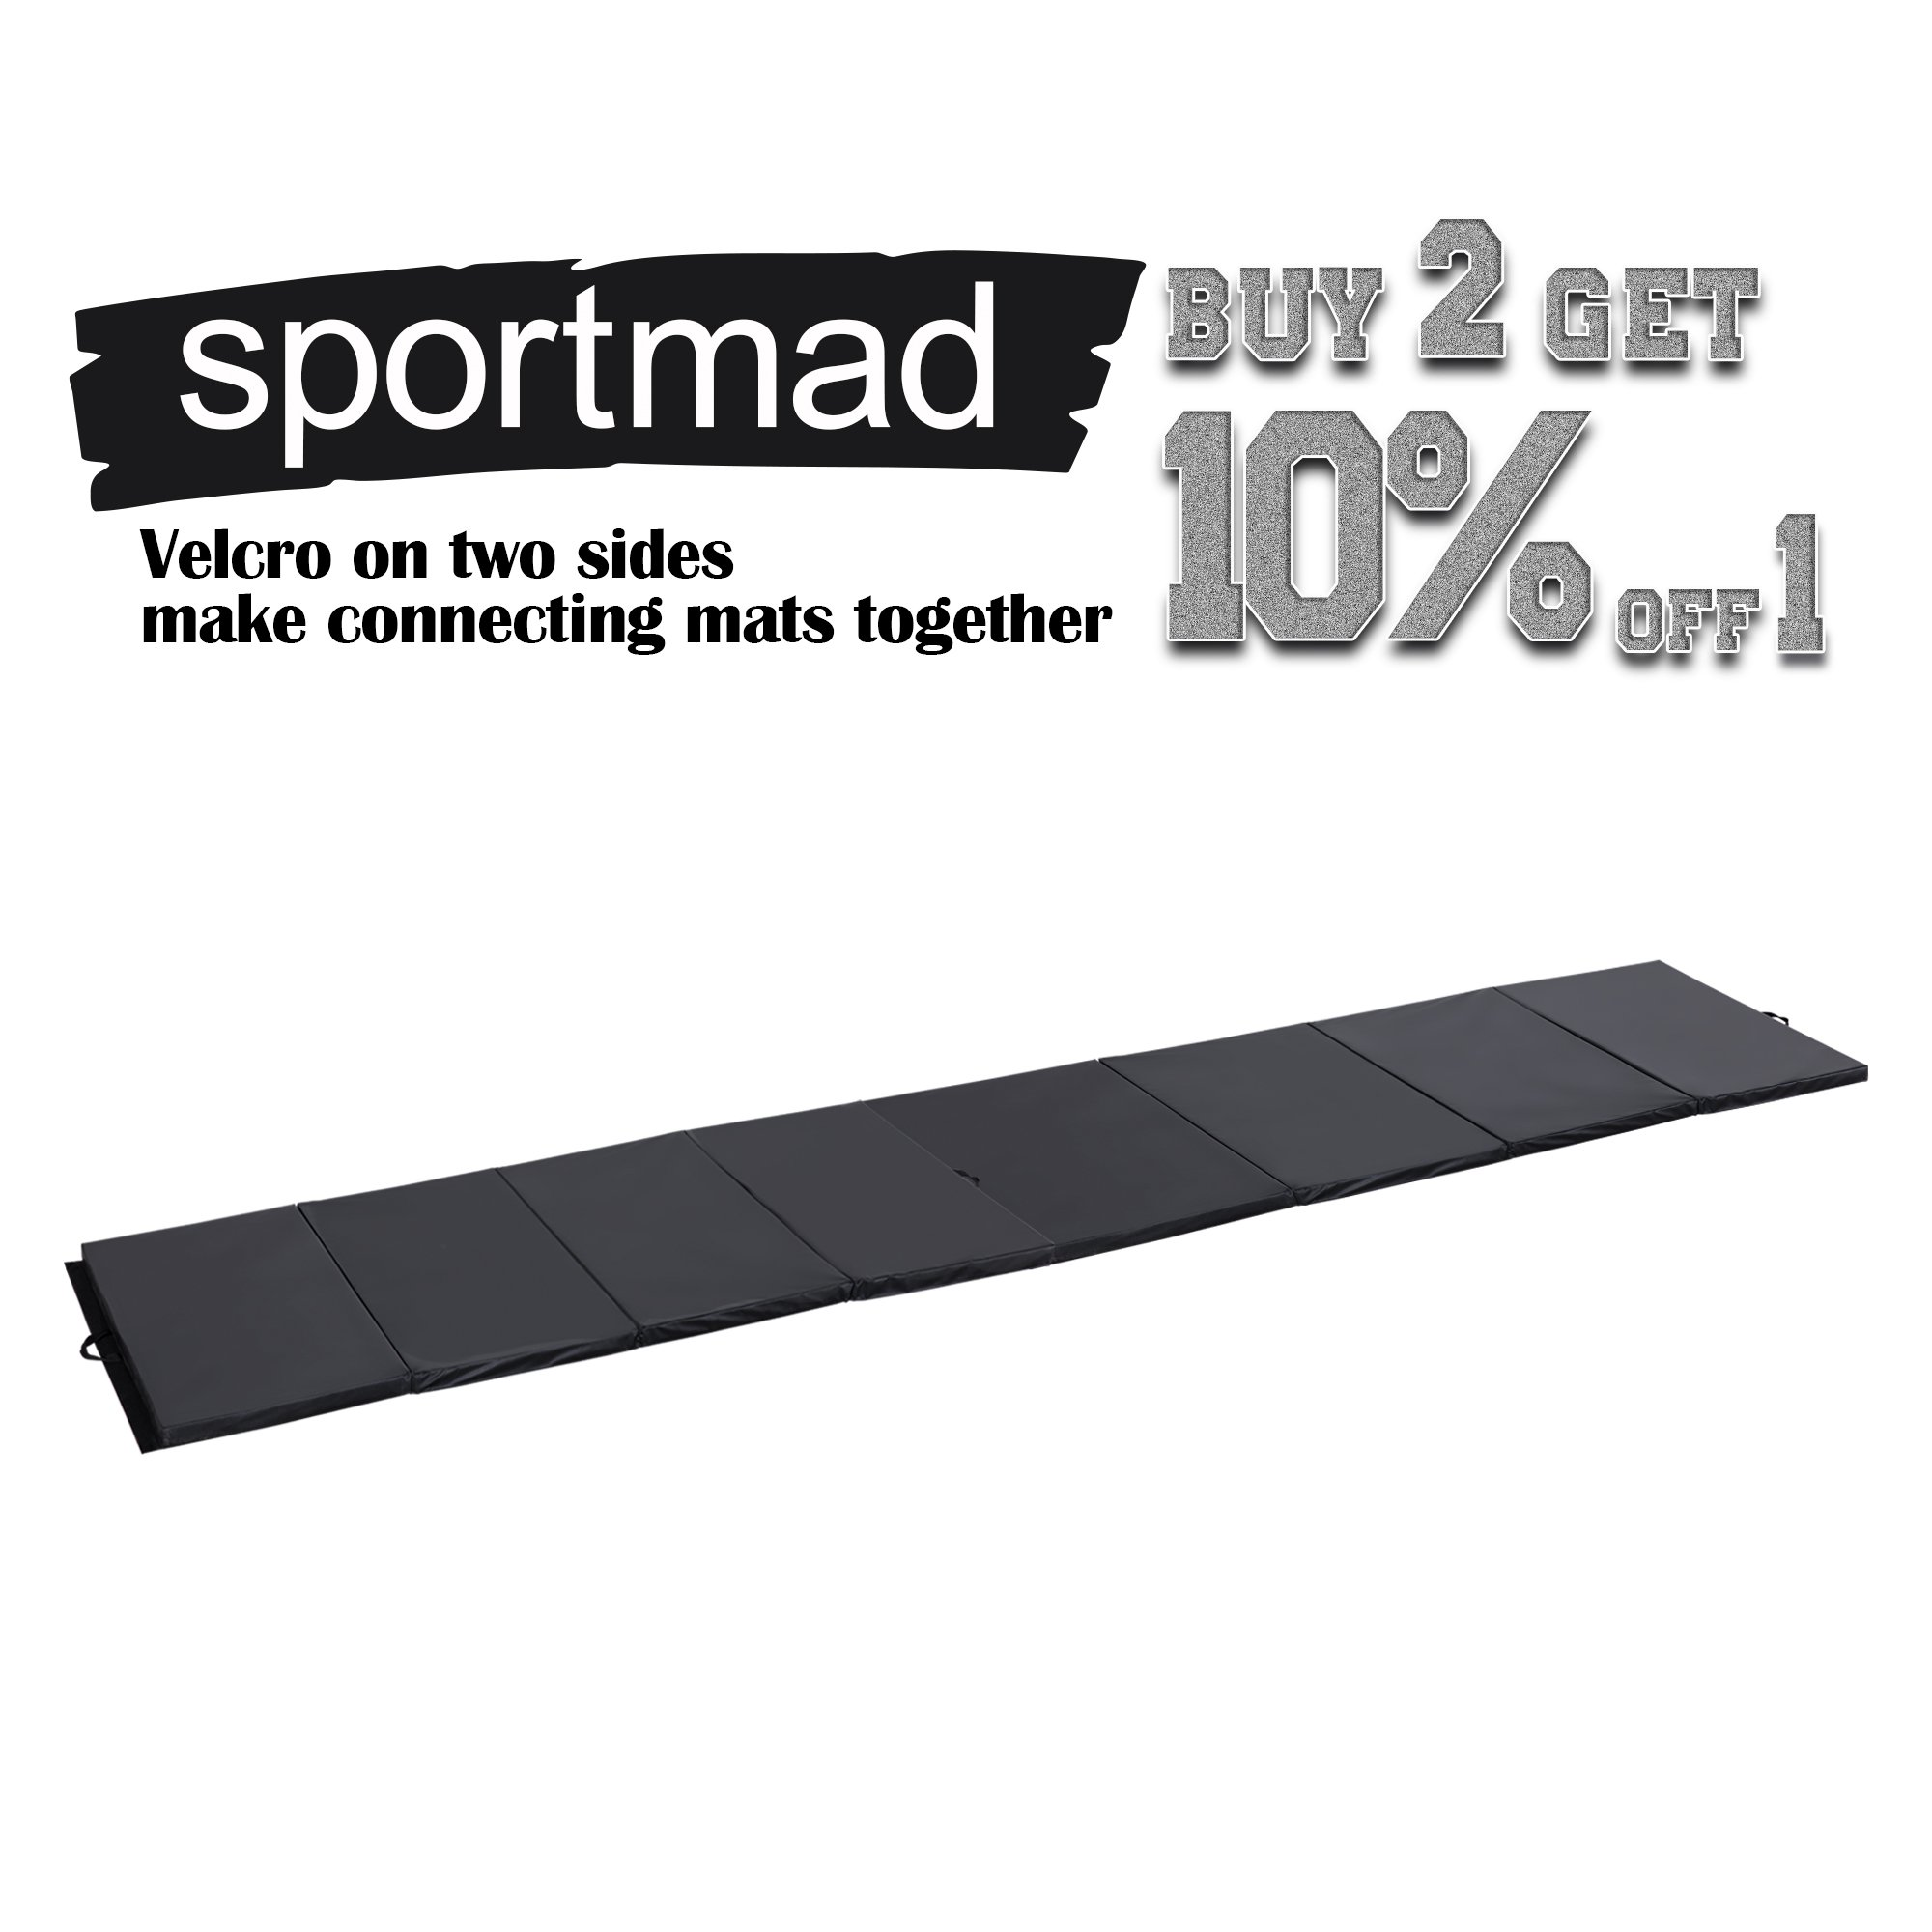 Sportmad 4'x8'x2/4'x10'x2 Thick Folding Panel Gymnastics Tumbling Mat for Home Gym Fitness Exercise by Sportmad (Image #6)